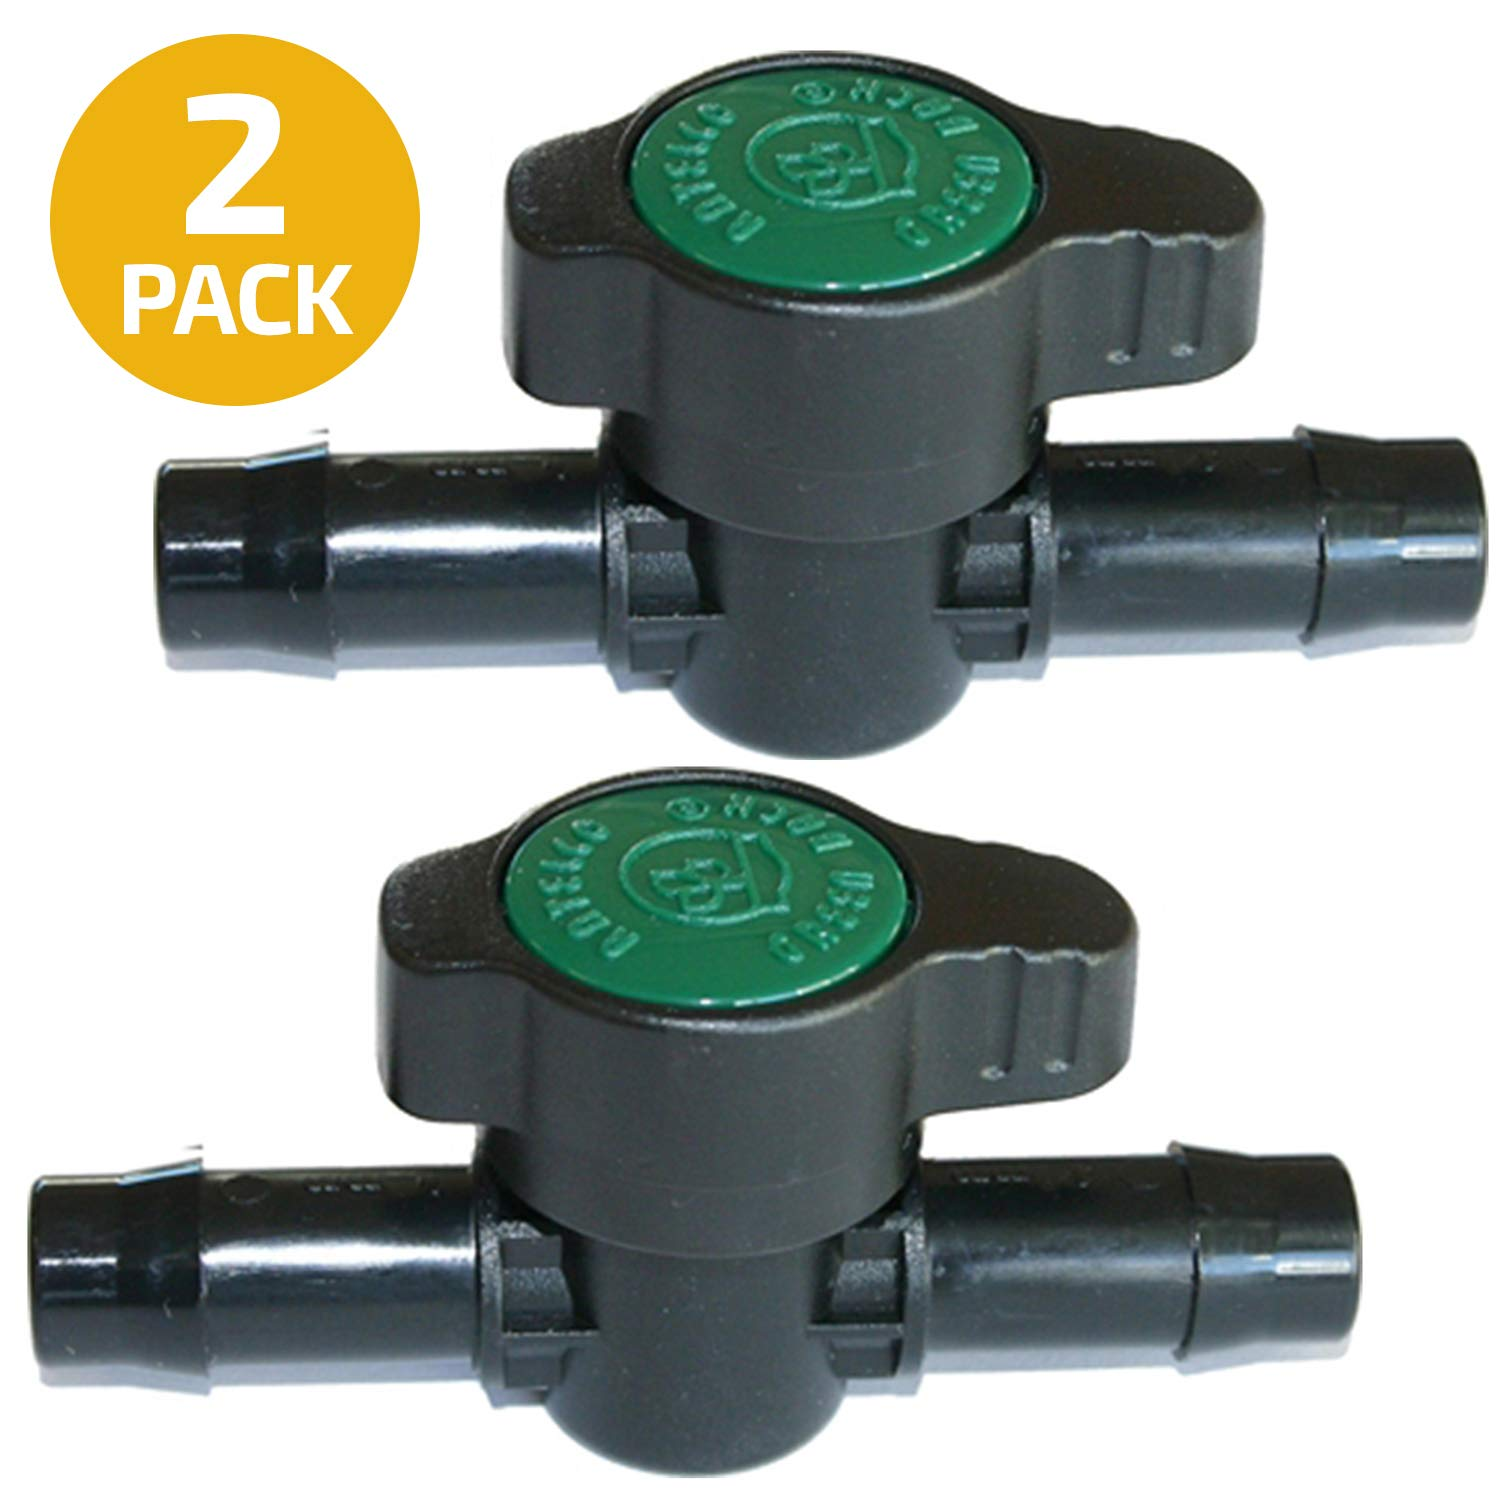 2-Pack in-Line Coupling Barbed Ball Valve 13mm for 1/2 inch Tubing .520 ID - Regulate Water Flow/Shut Off in Aquariums, Aquatics (NOT for Drip Irrigation) by Habitech